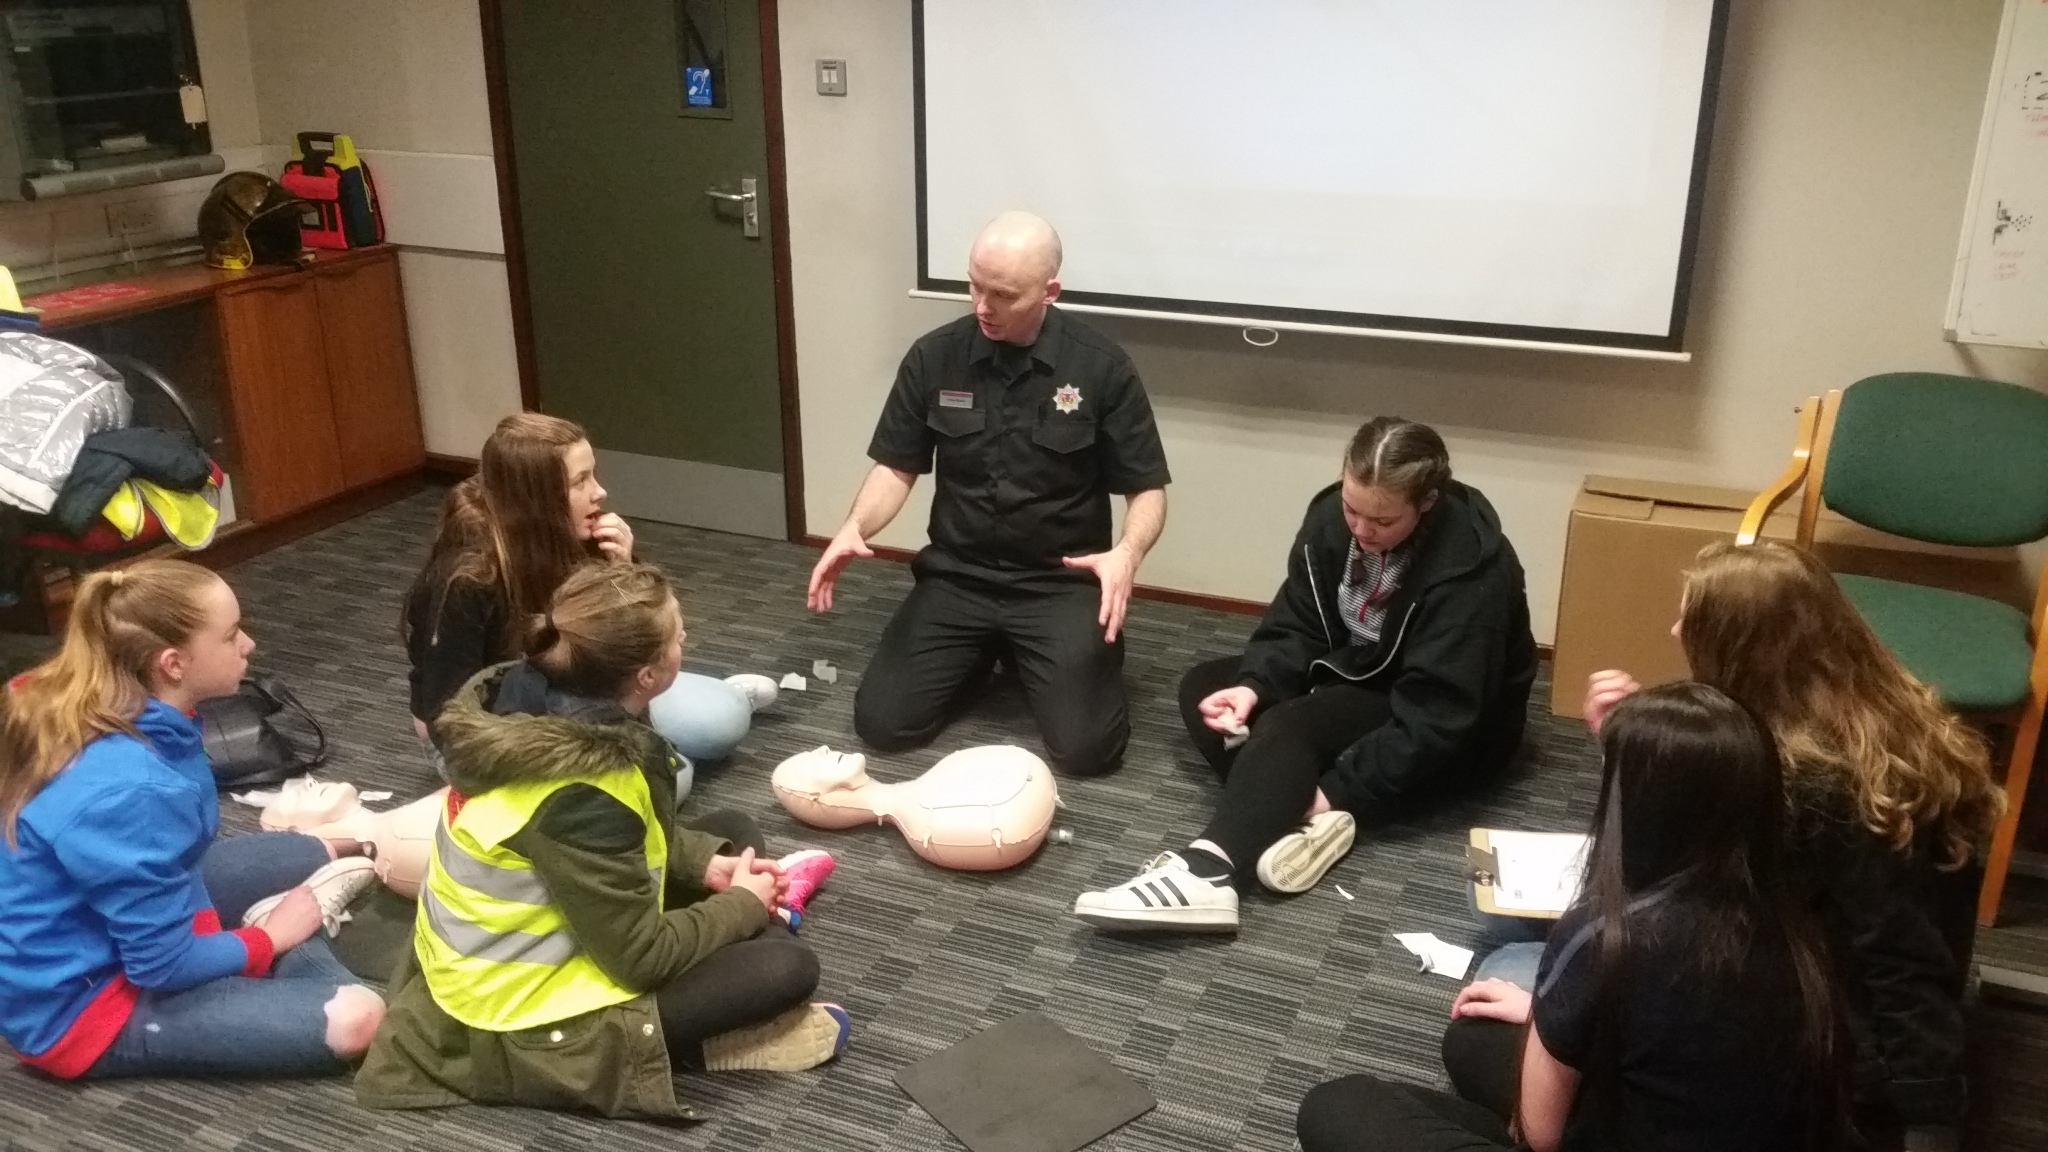 Firefighters teach CPR to girlguides